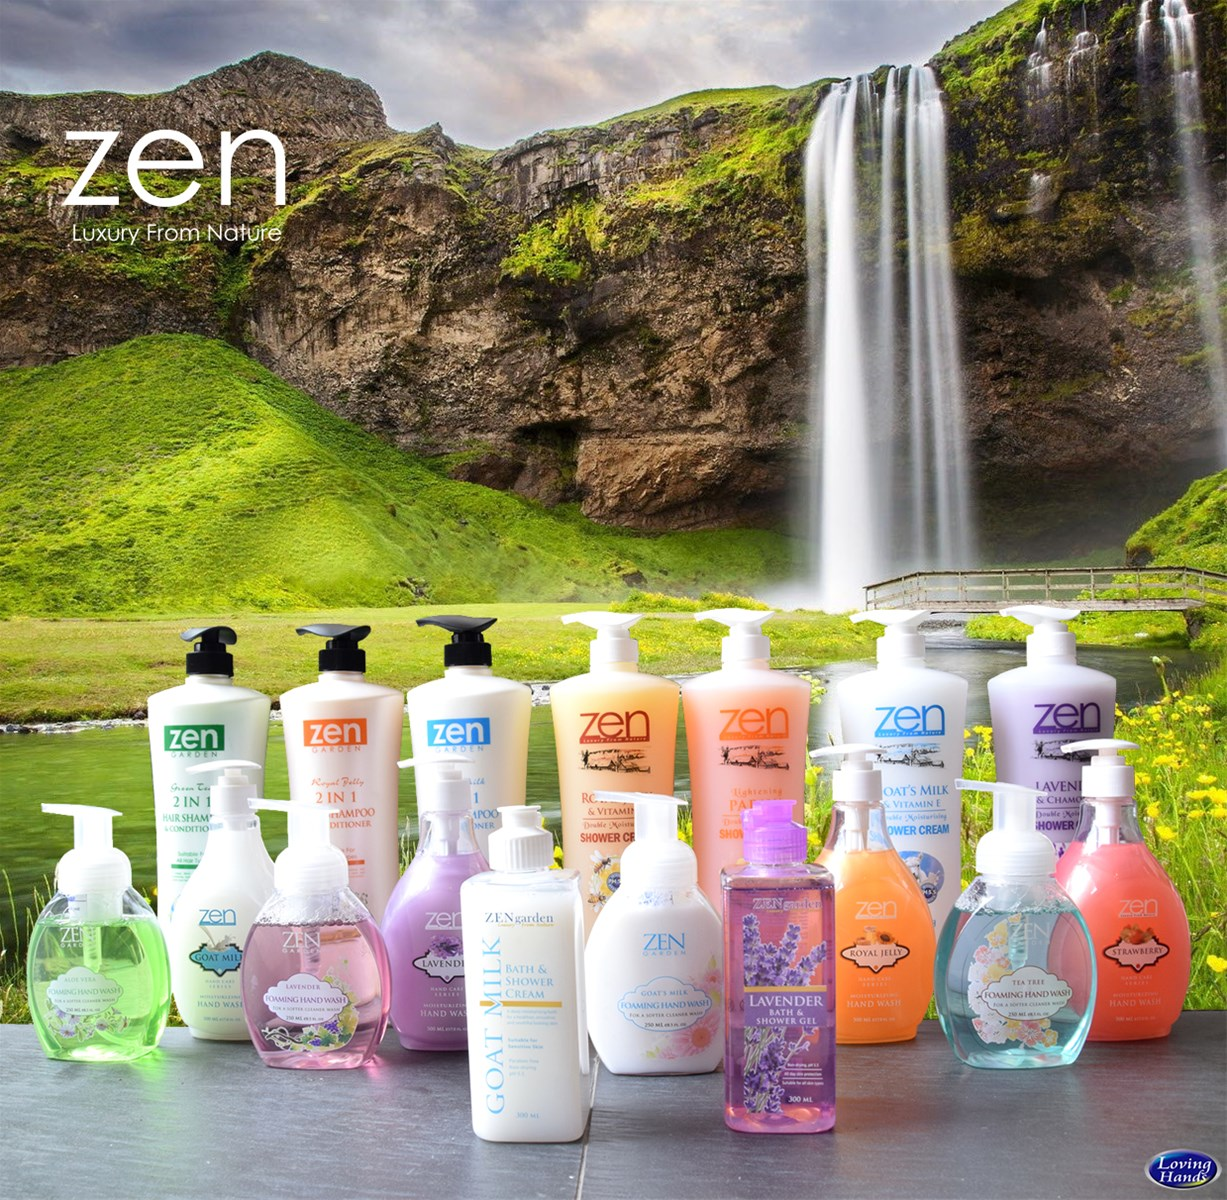 Royal Garden Goats Milk Shower Gel Daftar Harga Terlengkap Indonesia Leivy Cream Reffil 900 Ml Zen Goat